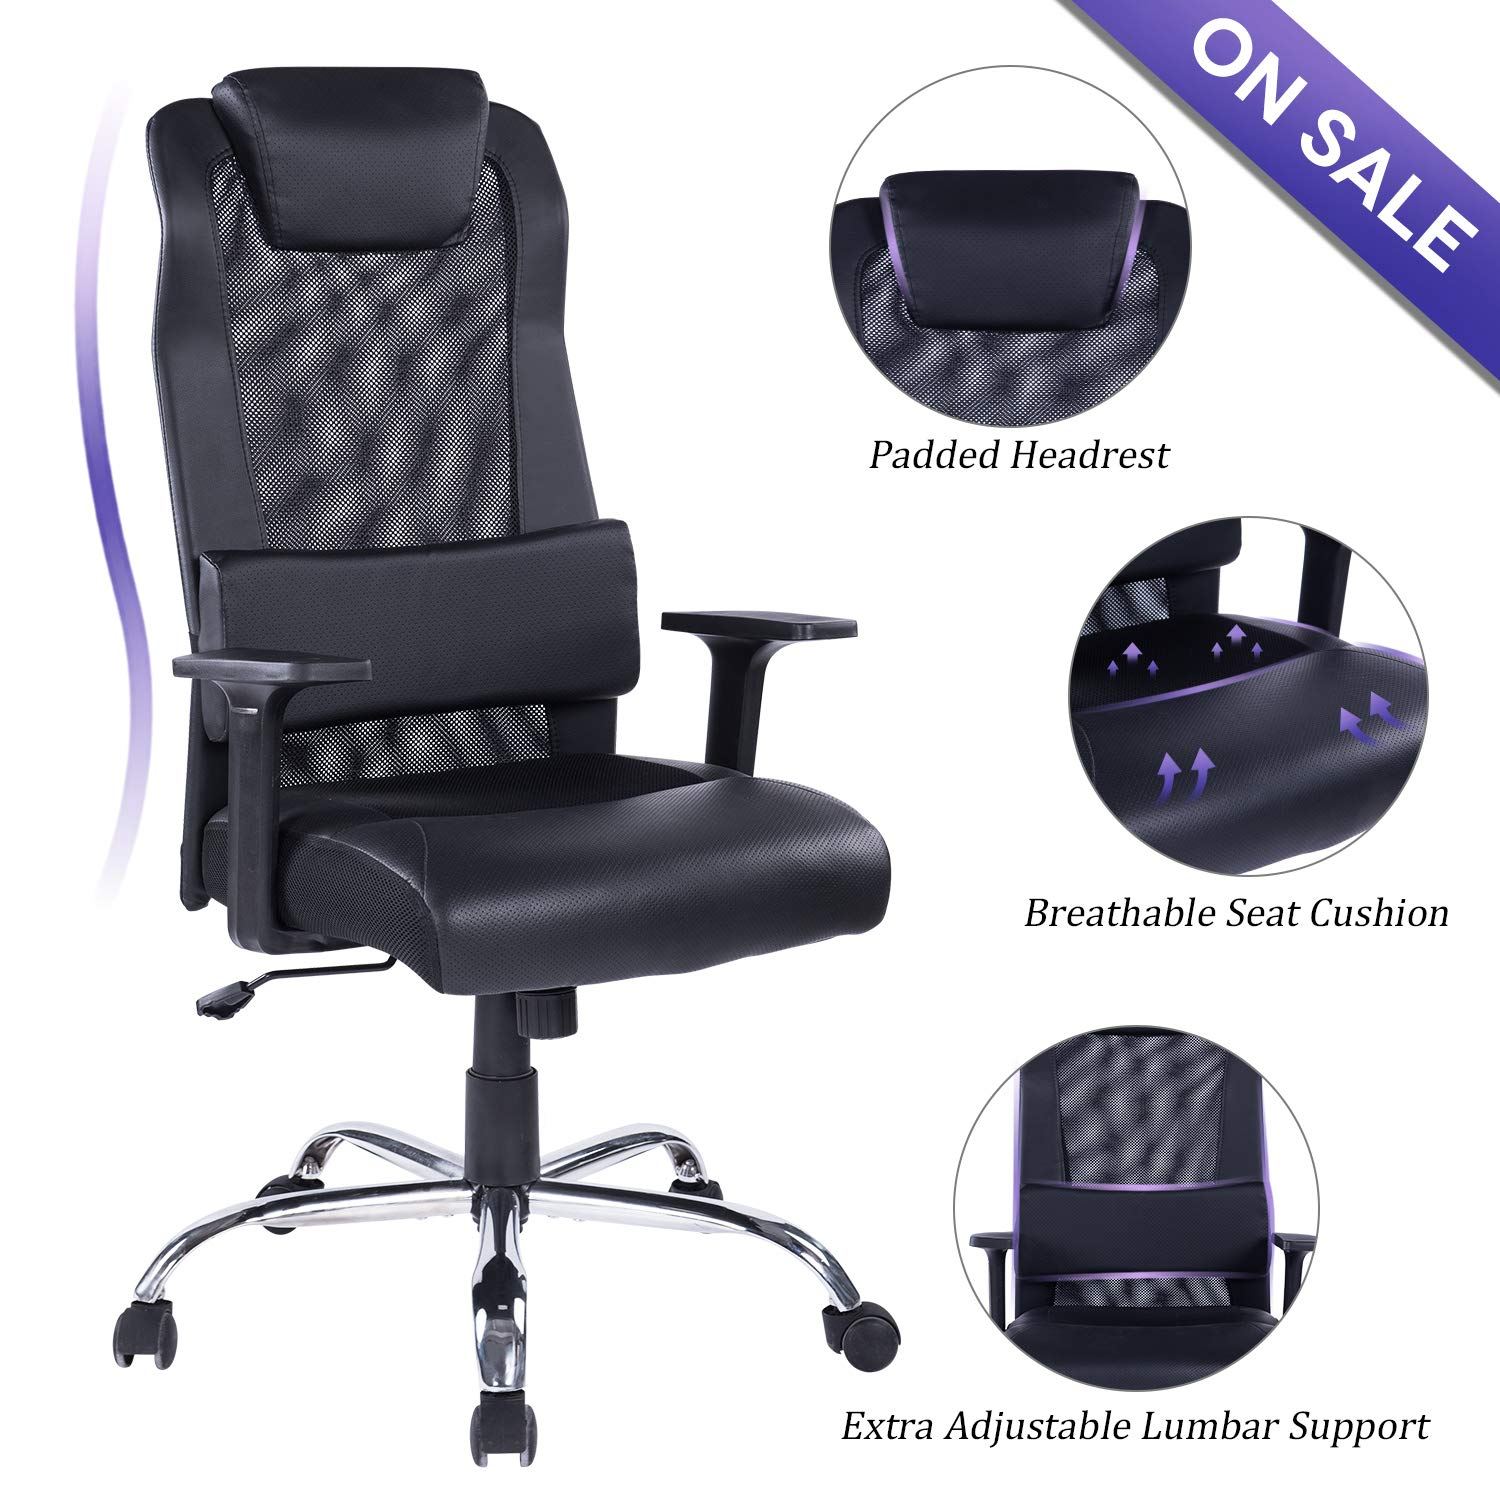 REFICCER Mesh & Leather Office Chair Computer Desk Task Ergonomic Swivel Chair - Adjustable Lumbar Support and Padded Headrest, Black